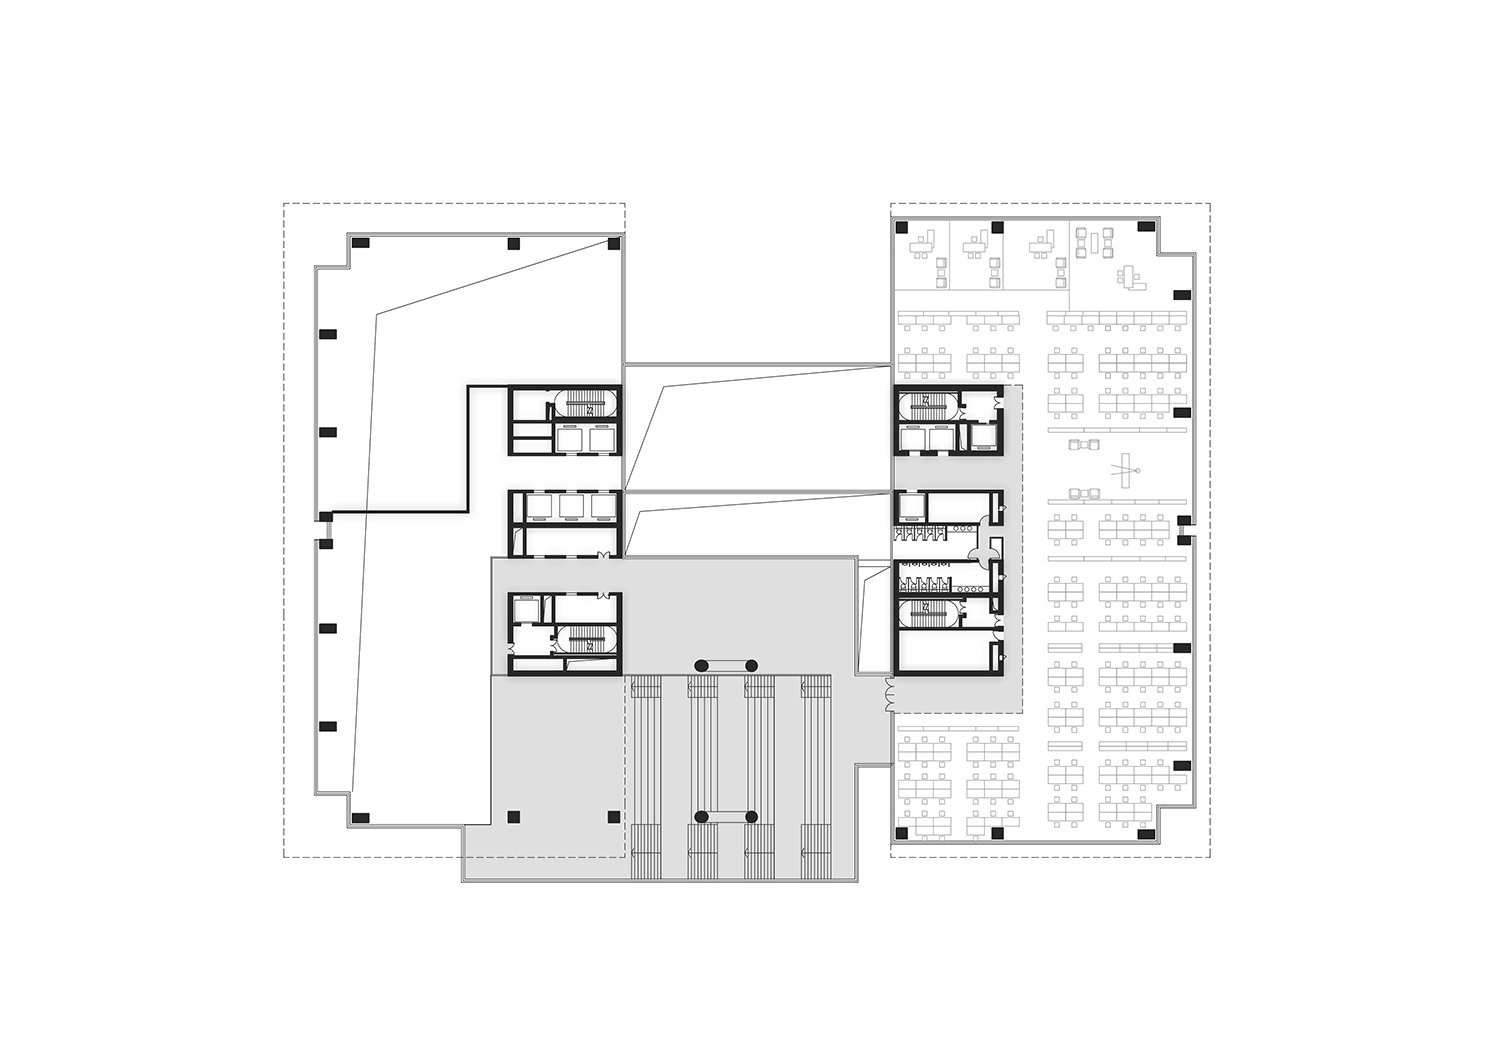 Offices Floor Plan All renderings and drawings © Rocco Design Architects}